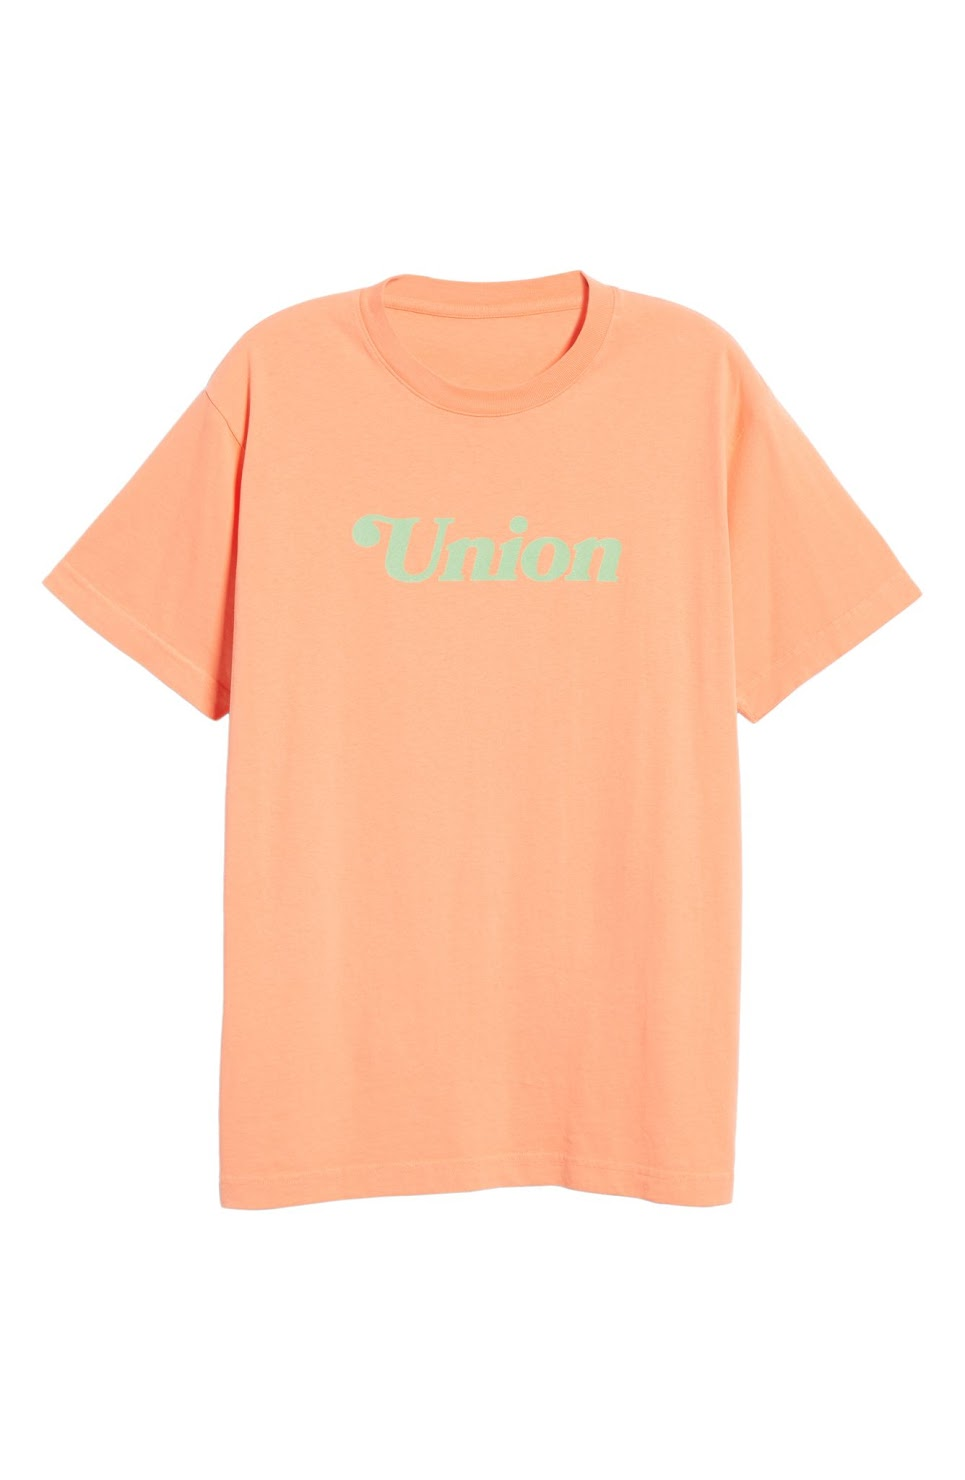 Union_Summer Logo Tee_Orange_$42.jpeg